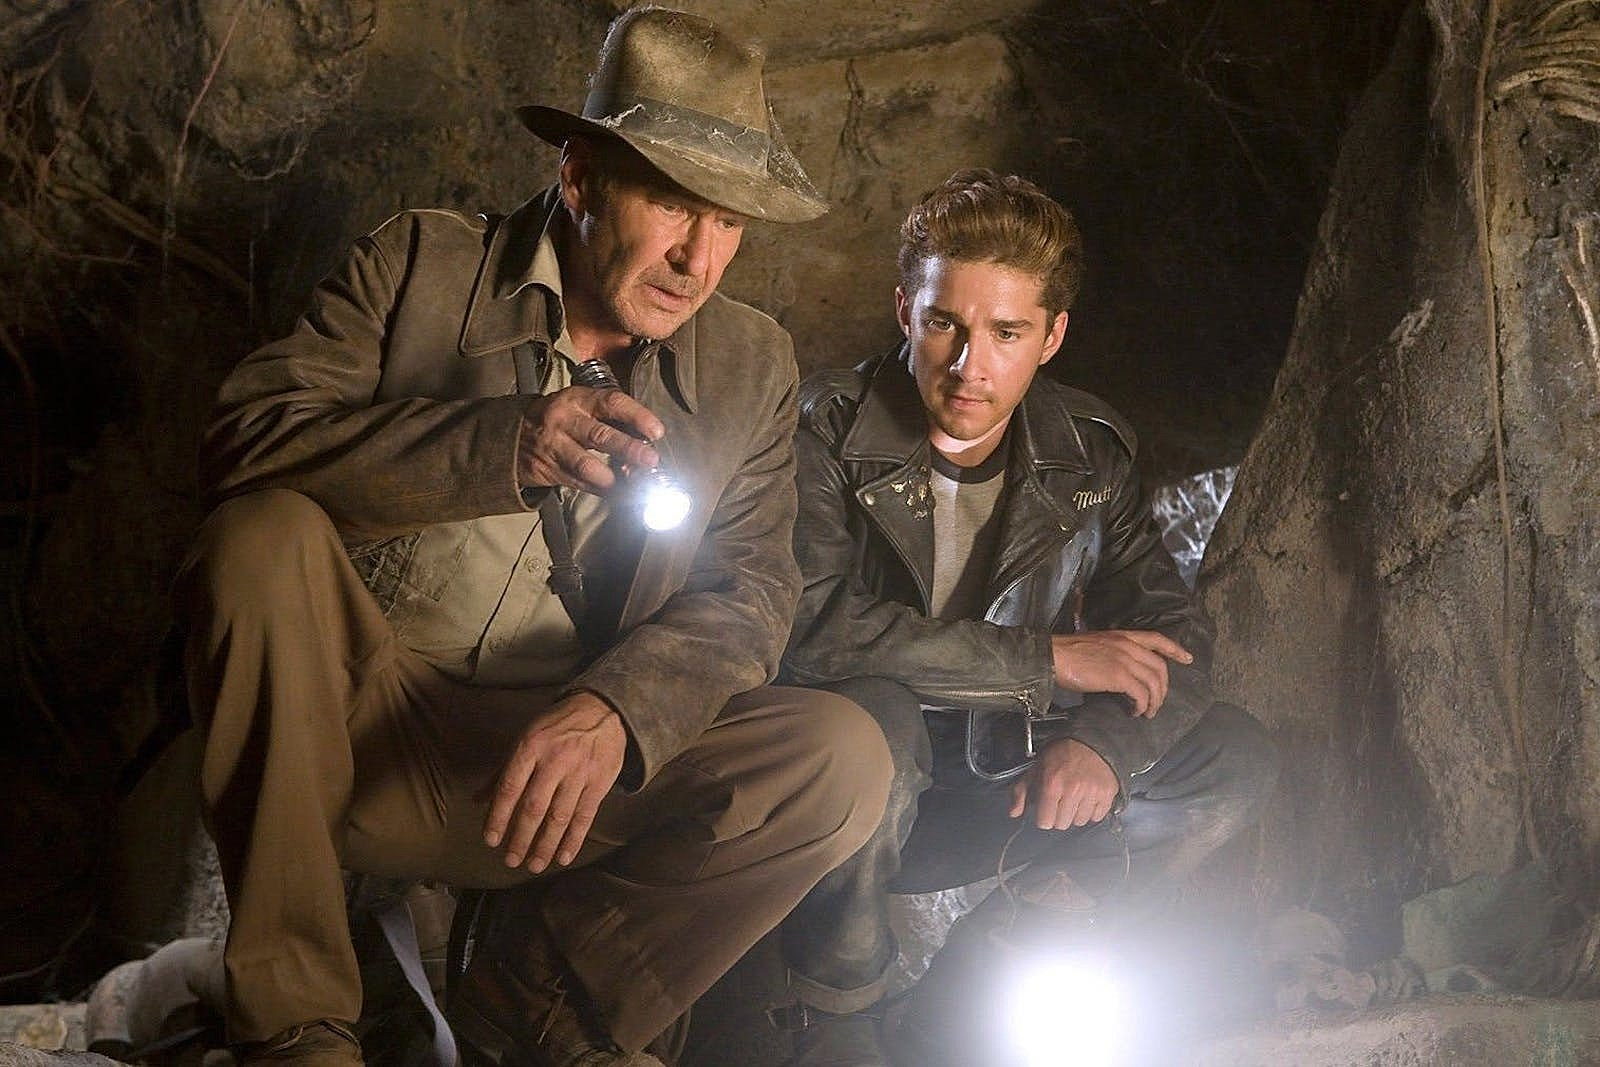 indiana jones and the crystal skull The Best (And Worst) Films Inspired By Indiana Jones